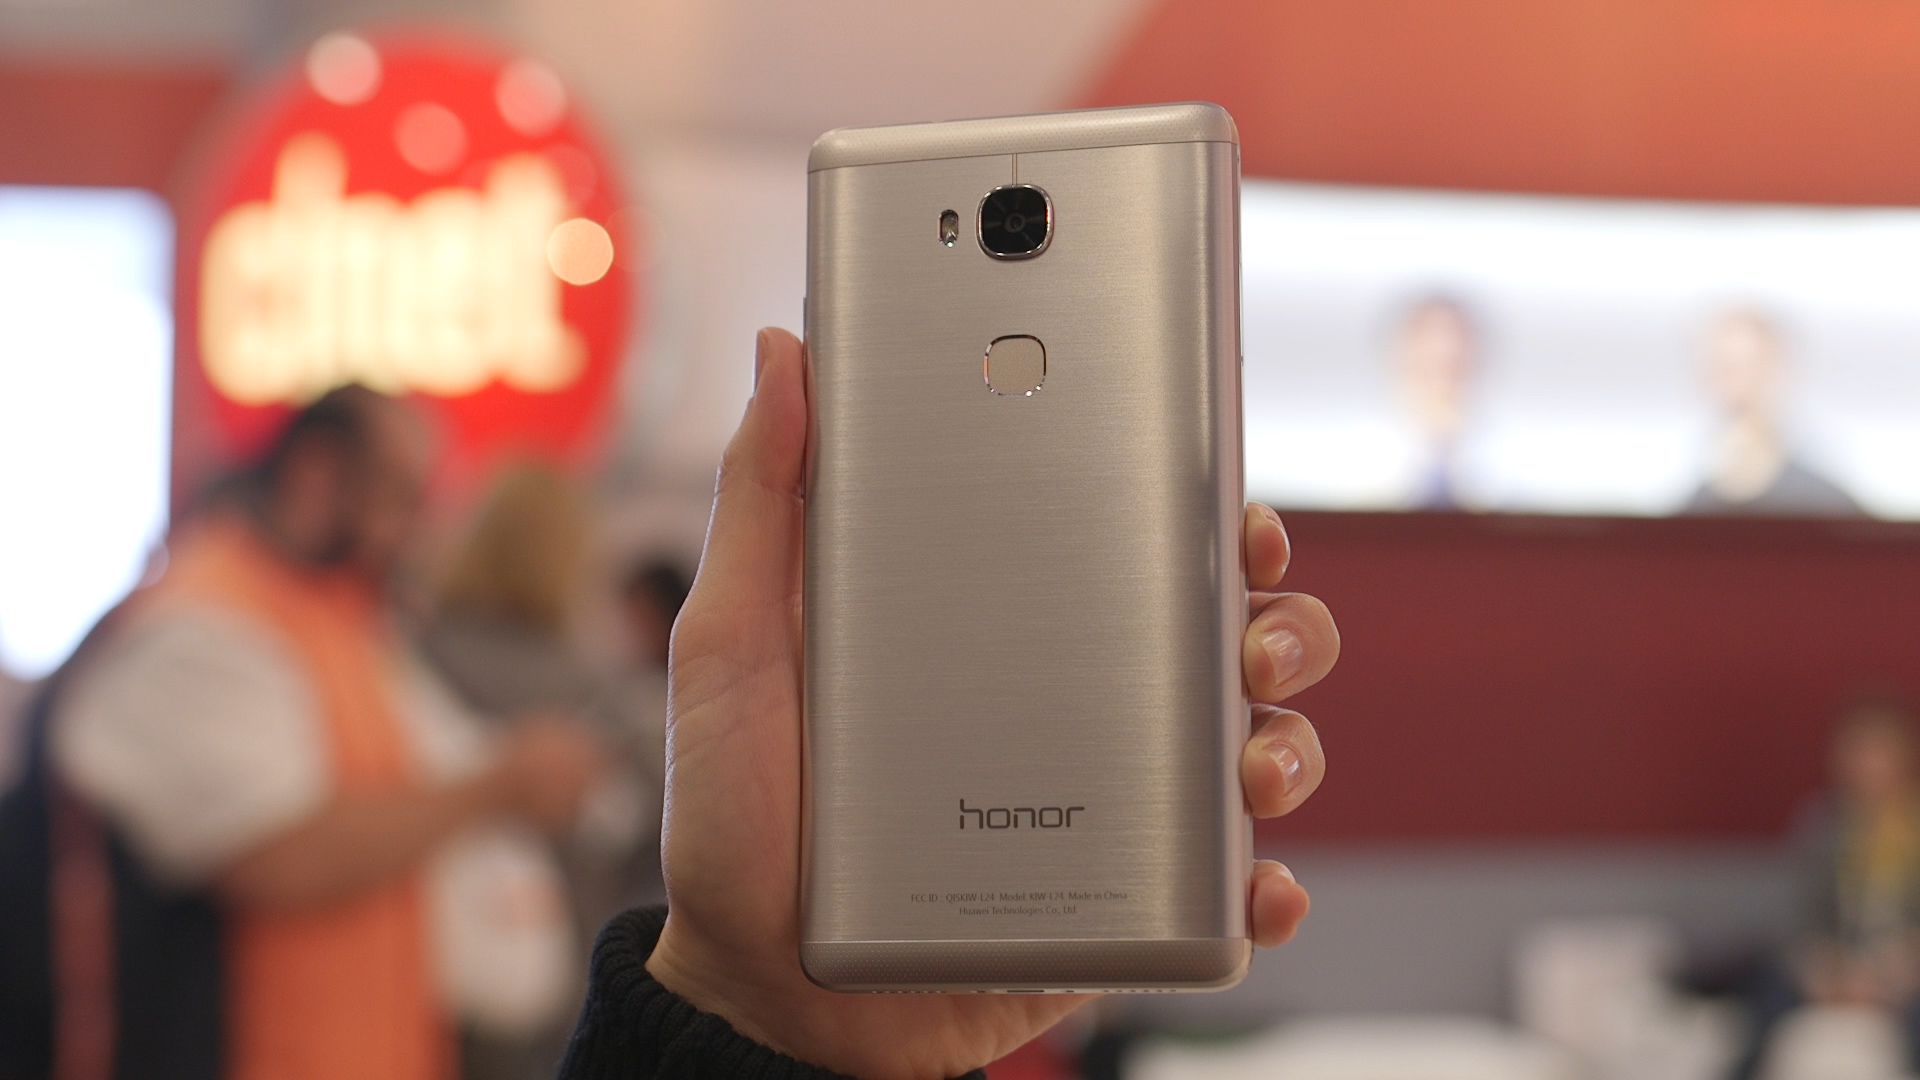 Video: Huawei's Honor 5X is dirt cheap